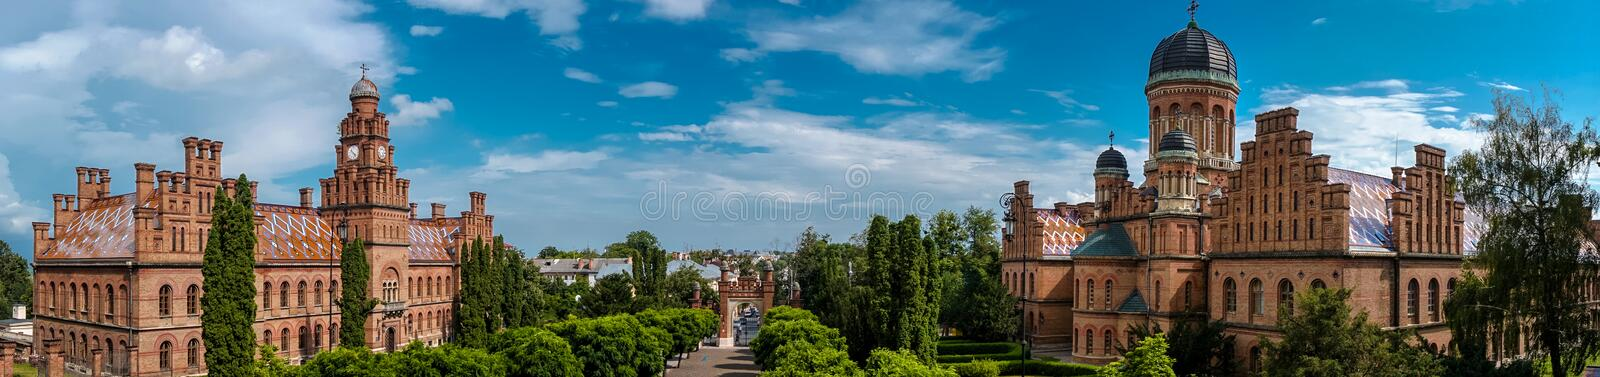 Université Ukraine de Chernivtsi photographie stock